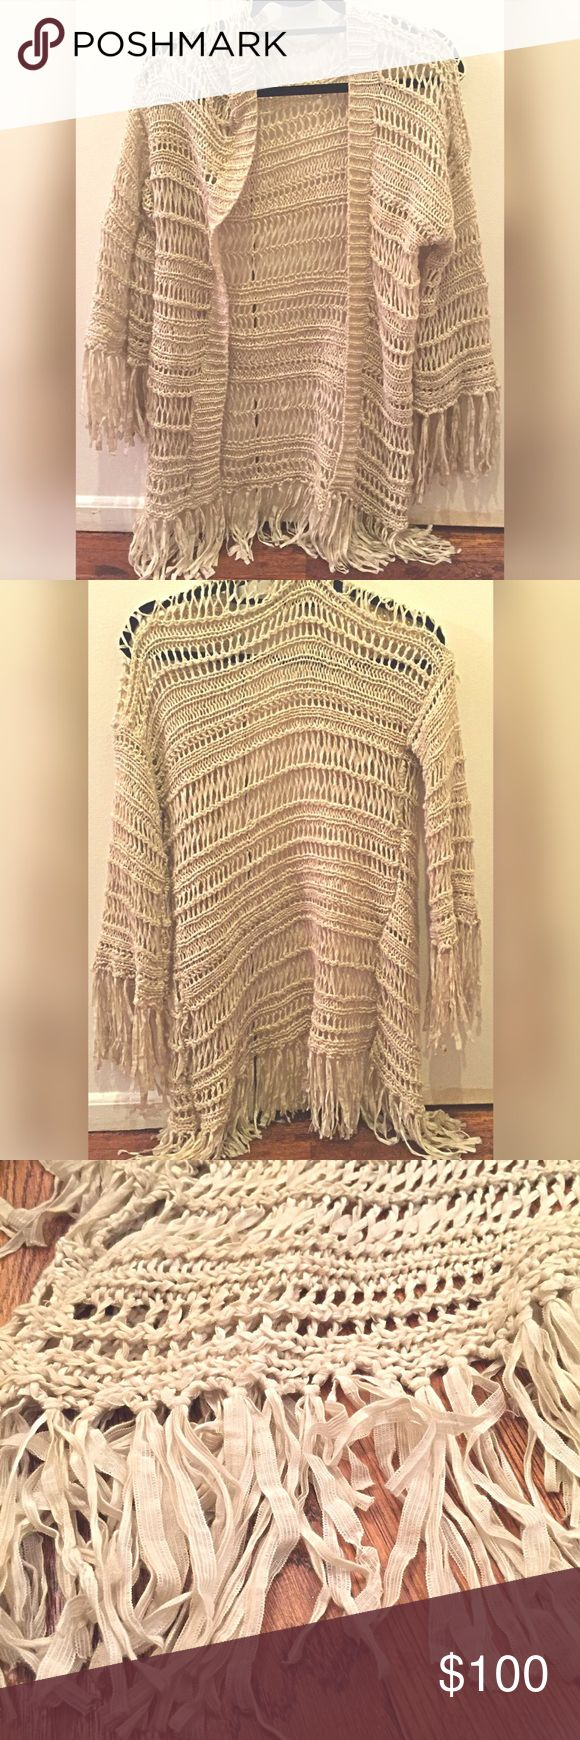 Over-Sized Fringe Cardigan Good condition. Fringed sleeves & bottom.  Easy to throw on over anything for a hippy chic look!  All reasonable offers accepted. LF Sweaters Cardigans